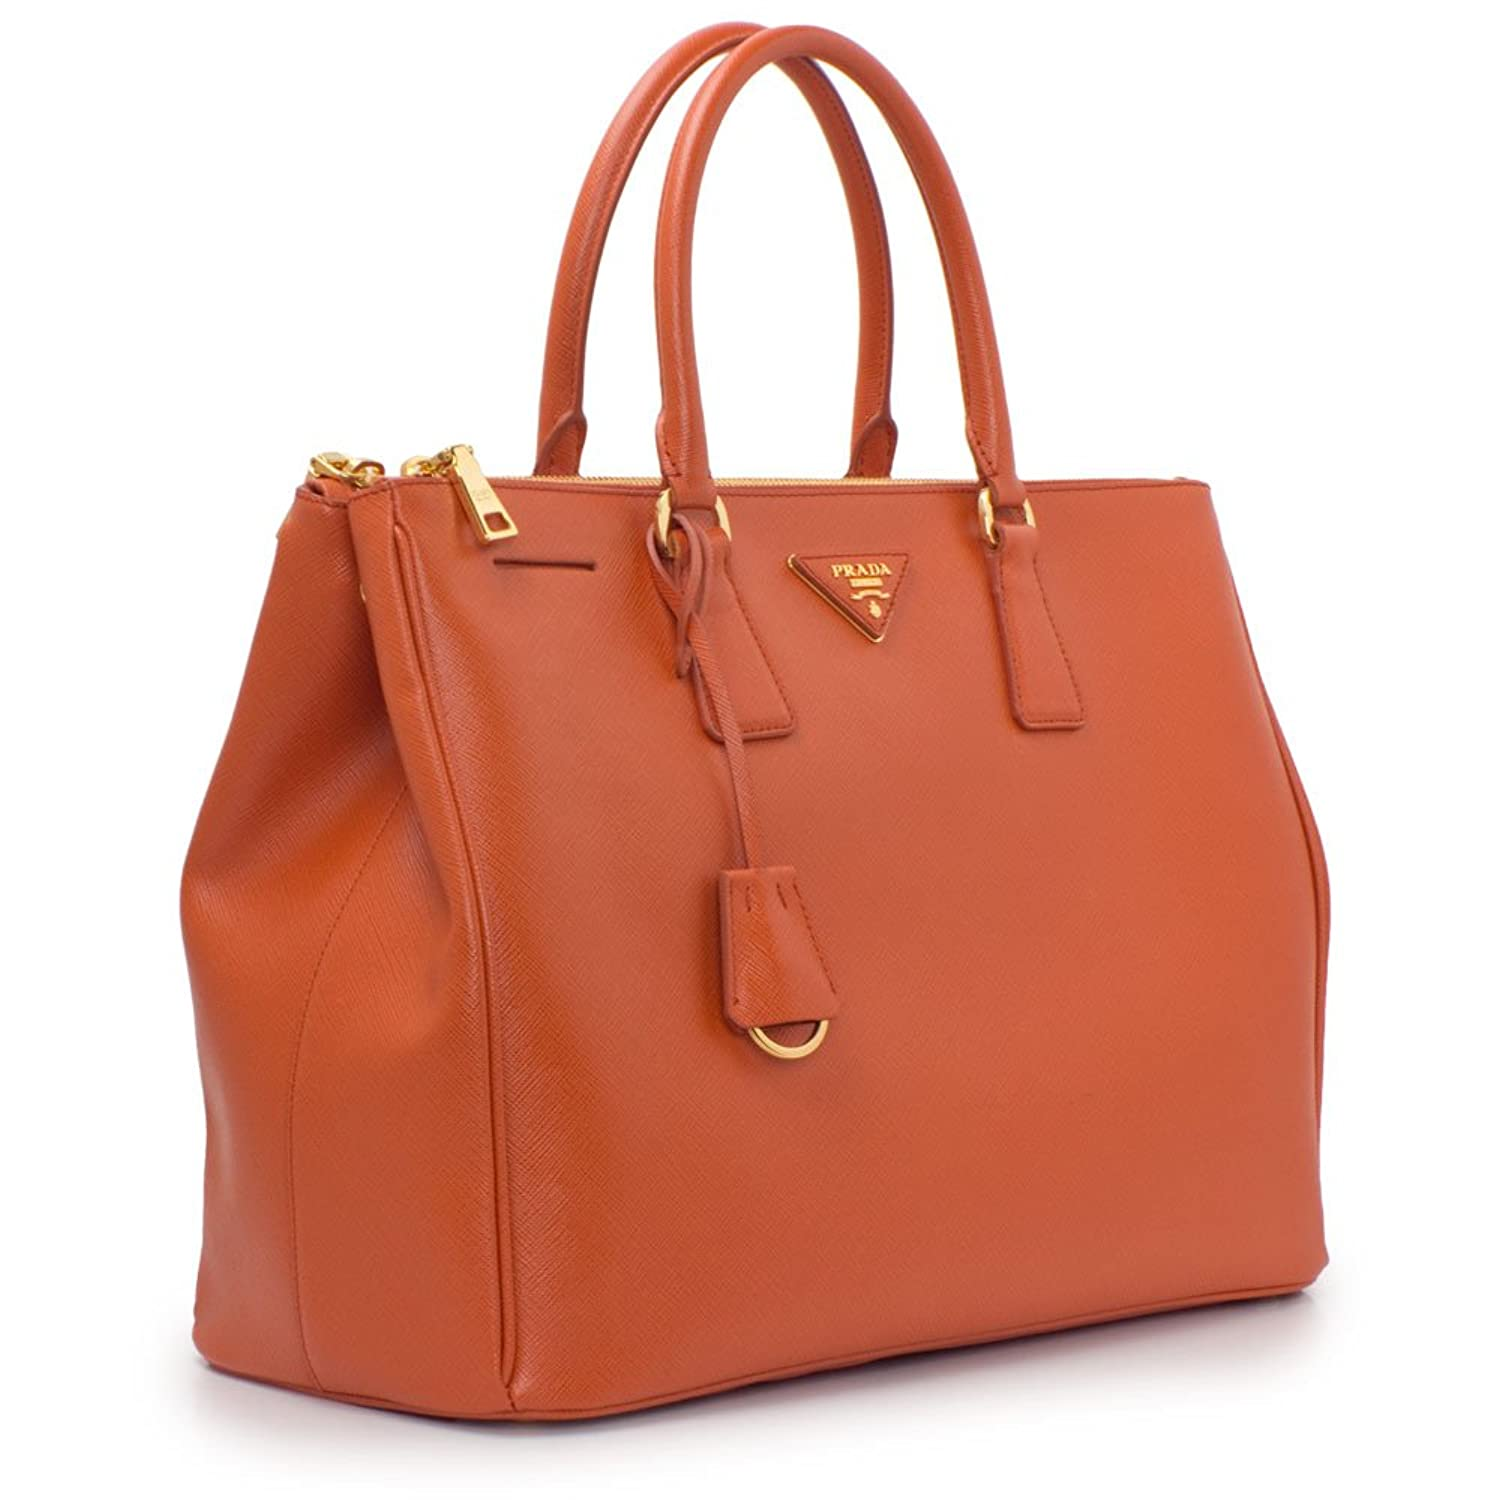 1dd9dadddef5 ... promo code for prada womens papaya orange saffiano lux tote bn1786  handbags amazon 9d3dd 9120a